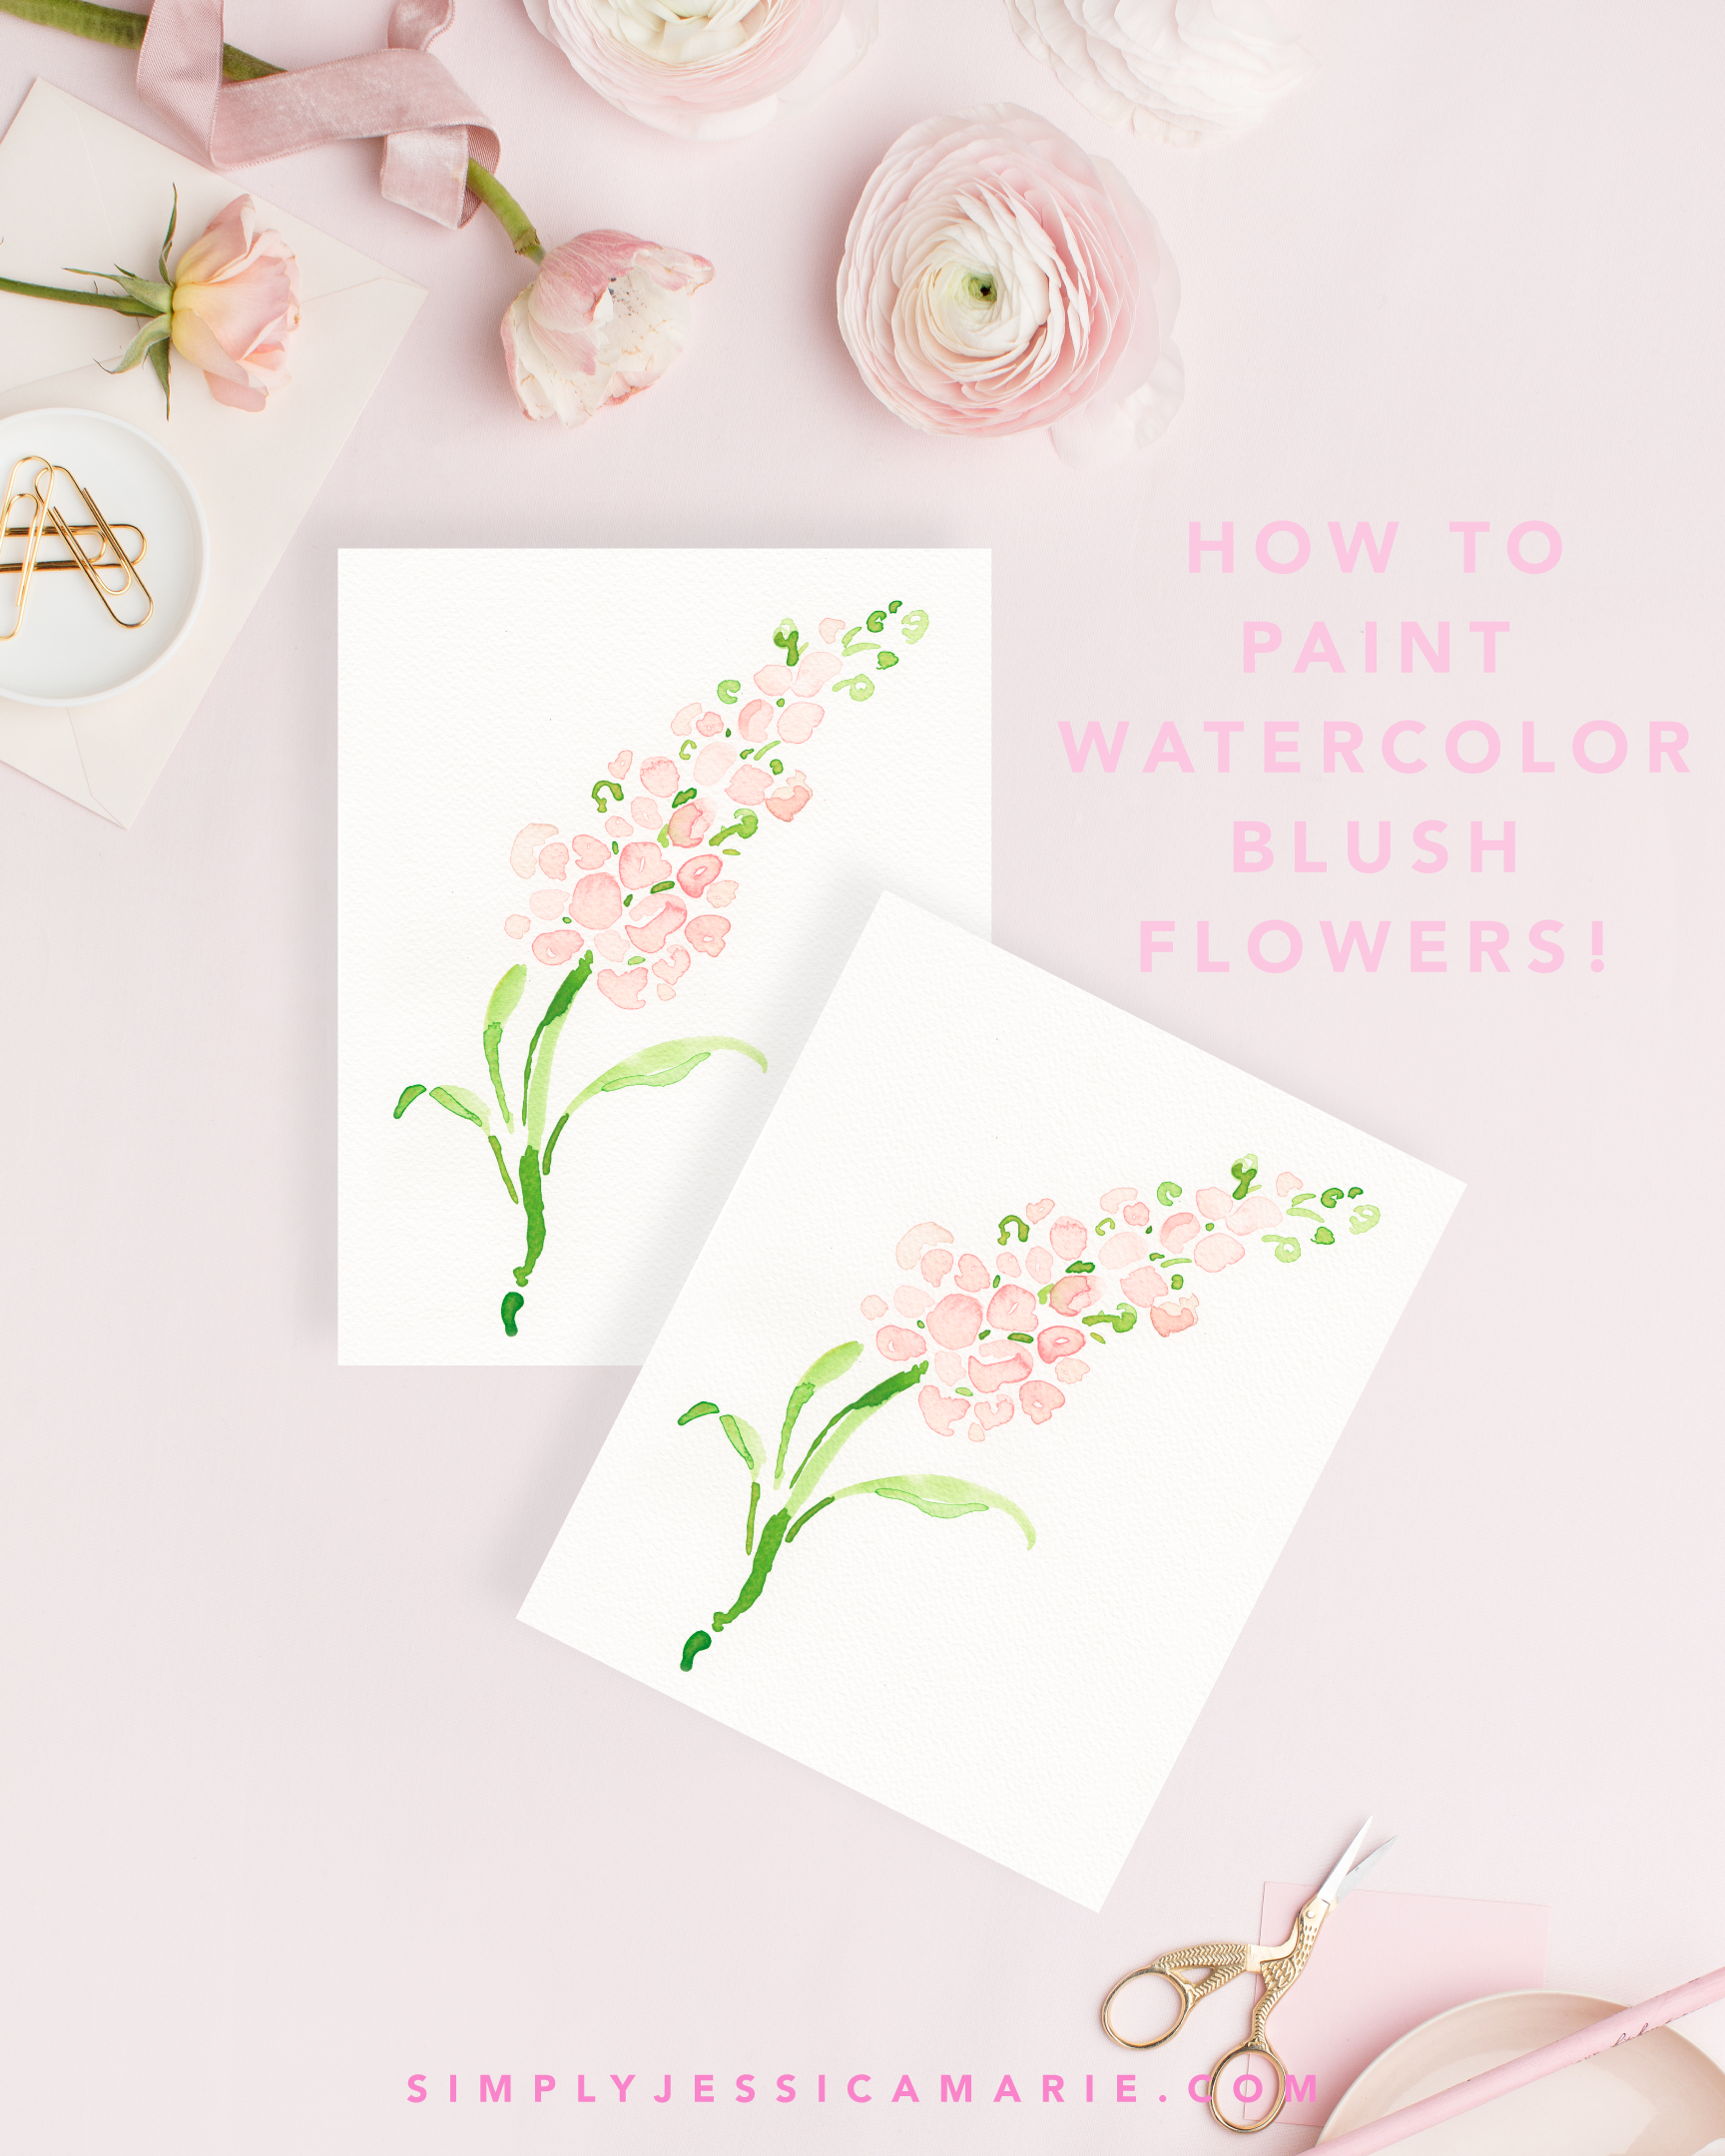 How to paint watercolor blush flowers! Fun and free watercolor videos by Simply Jessica Marie! Learn to mix new colors each week and paint with that color! | SC Stockshop